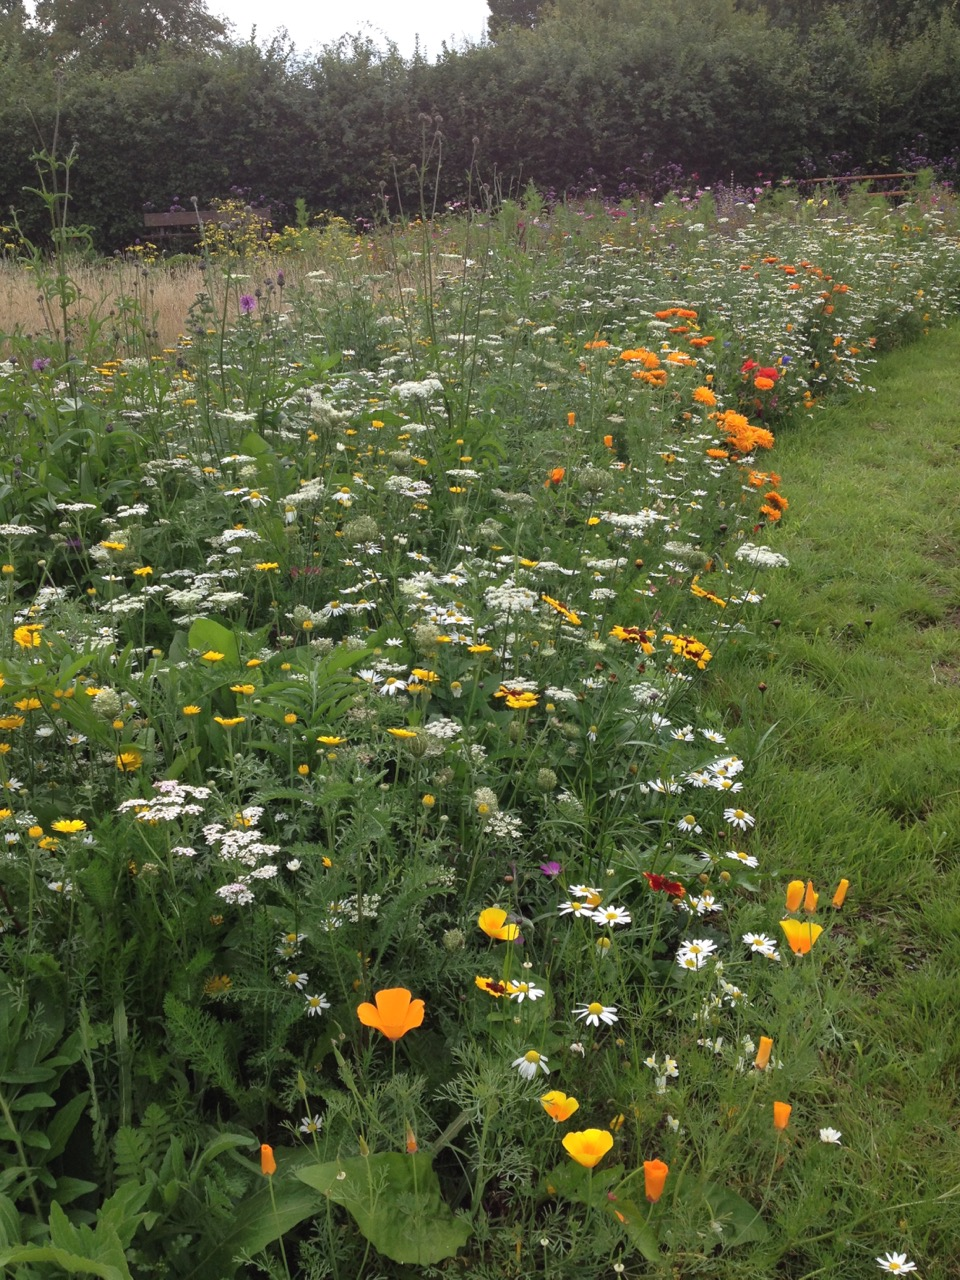 The Golden Summer perennial Pictorial Meadow bed is looking very lush and flowery now. We are supposed to crop it down to 10 cm again but it seems very cruel so we will wait until after our party on 27 August I think.